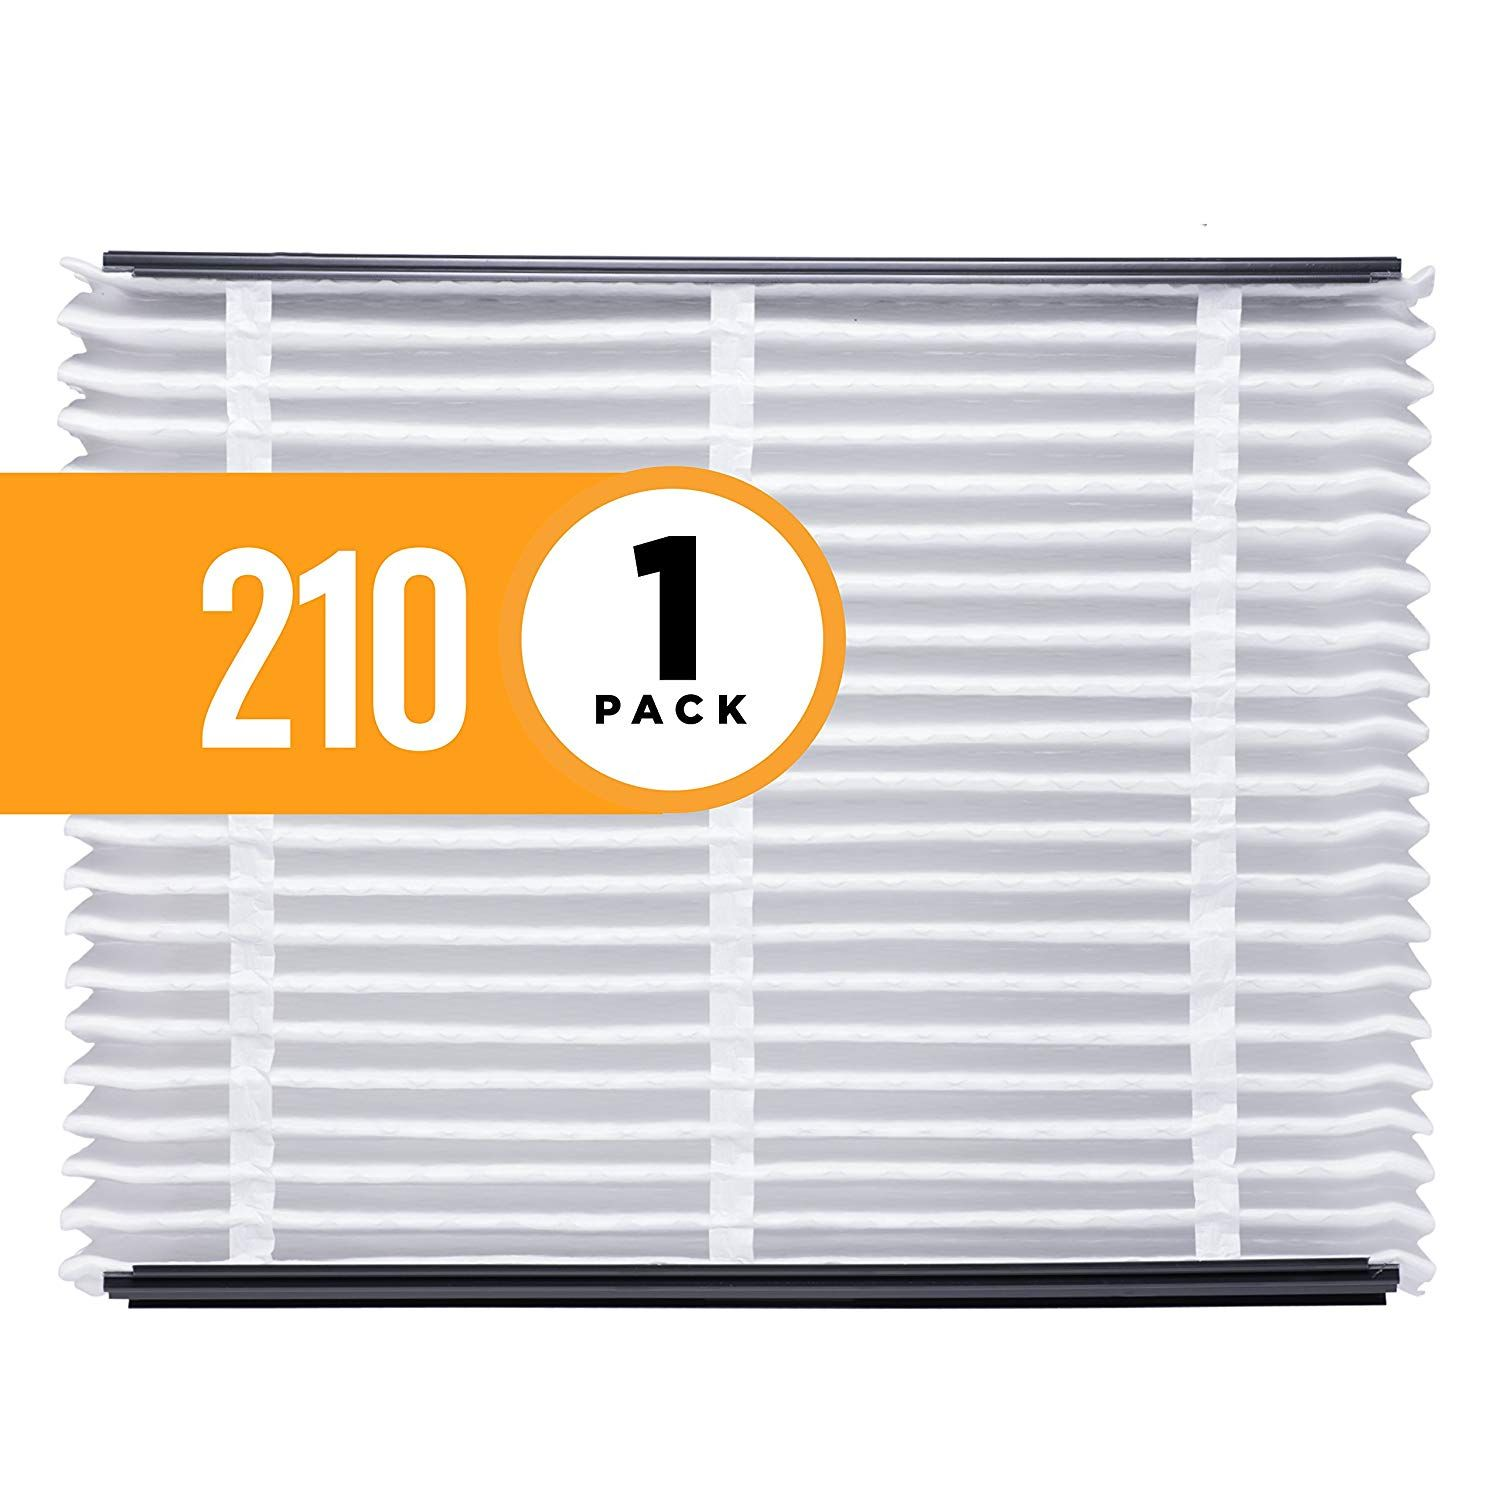 Aprilaire 210 Air Filter for Aprilaire Whole Home Air